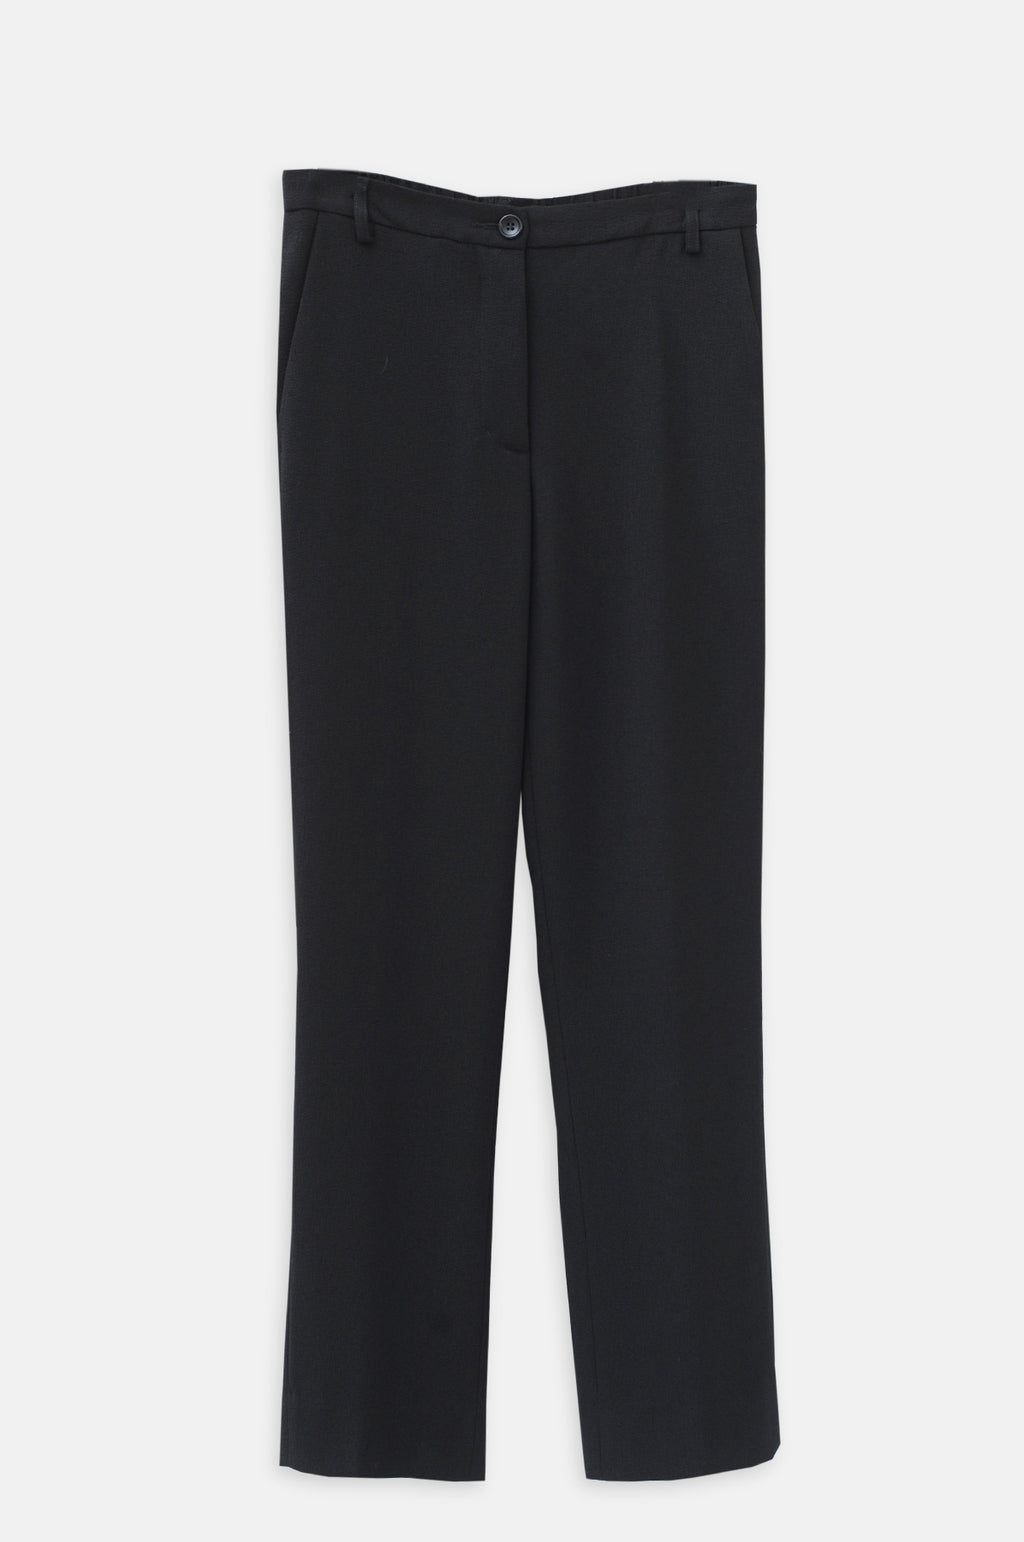 Parfum Pant in Black